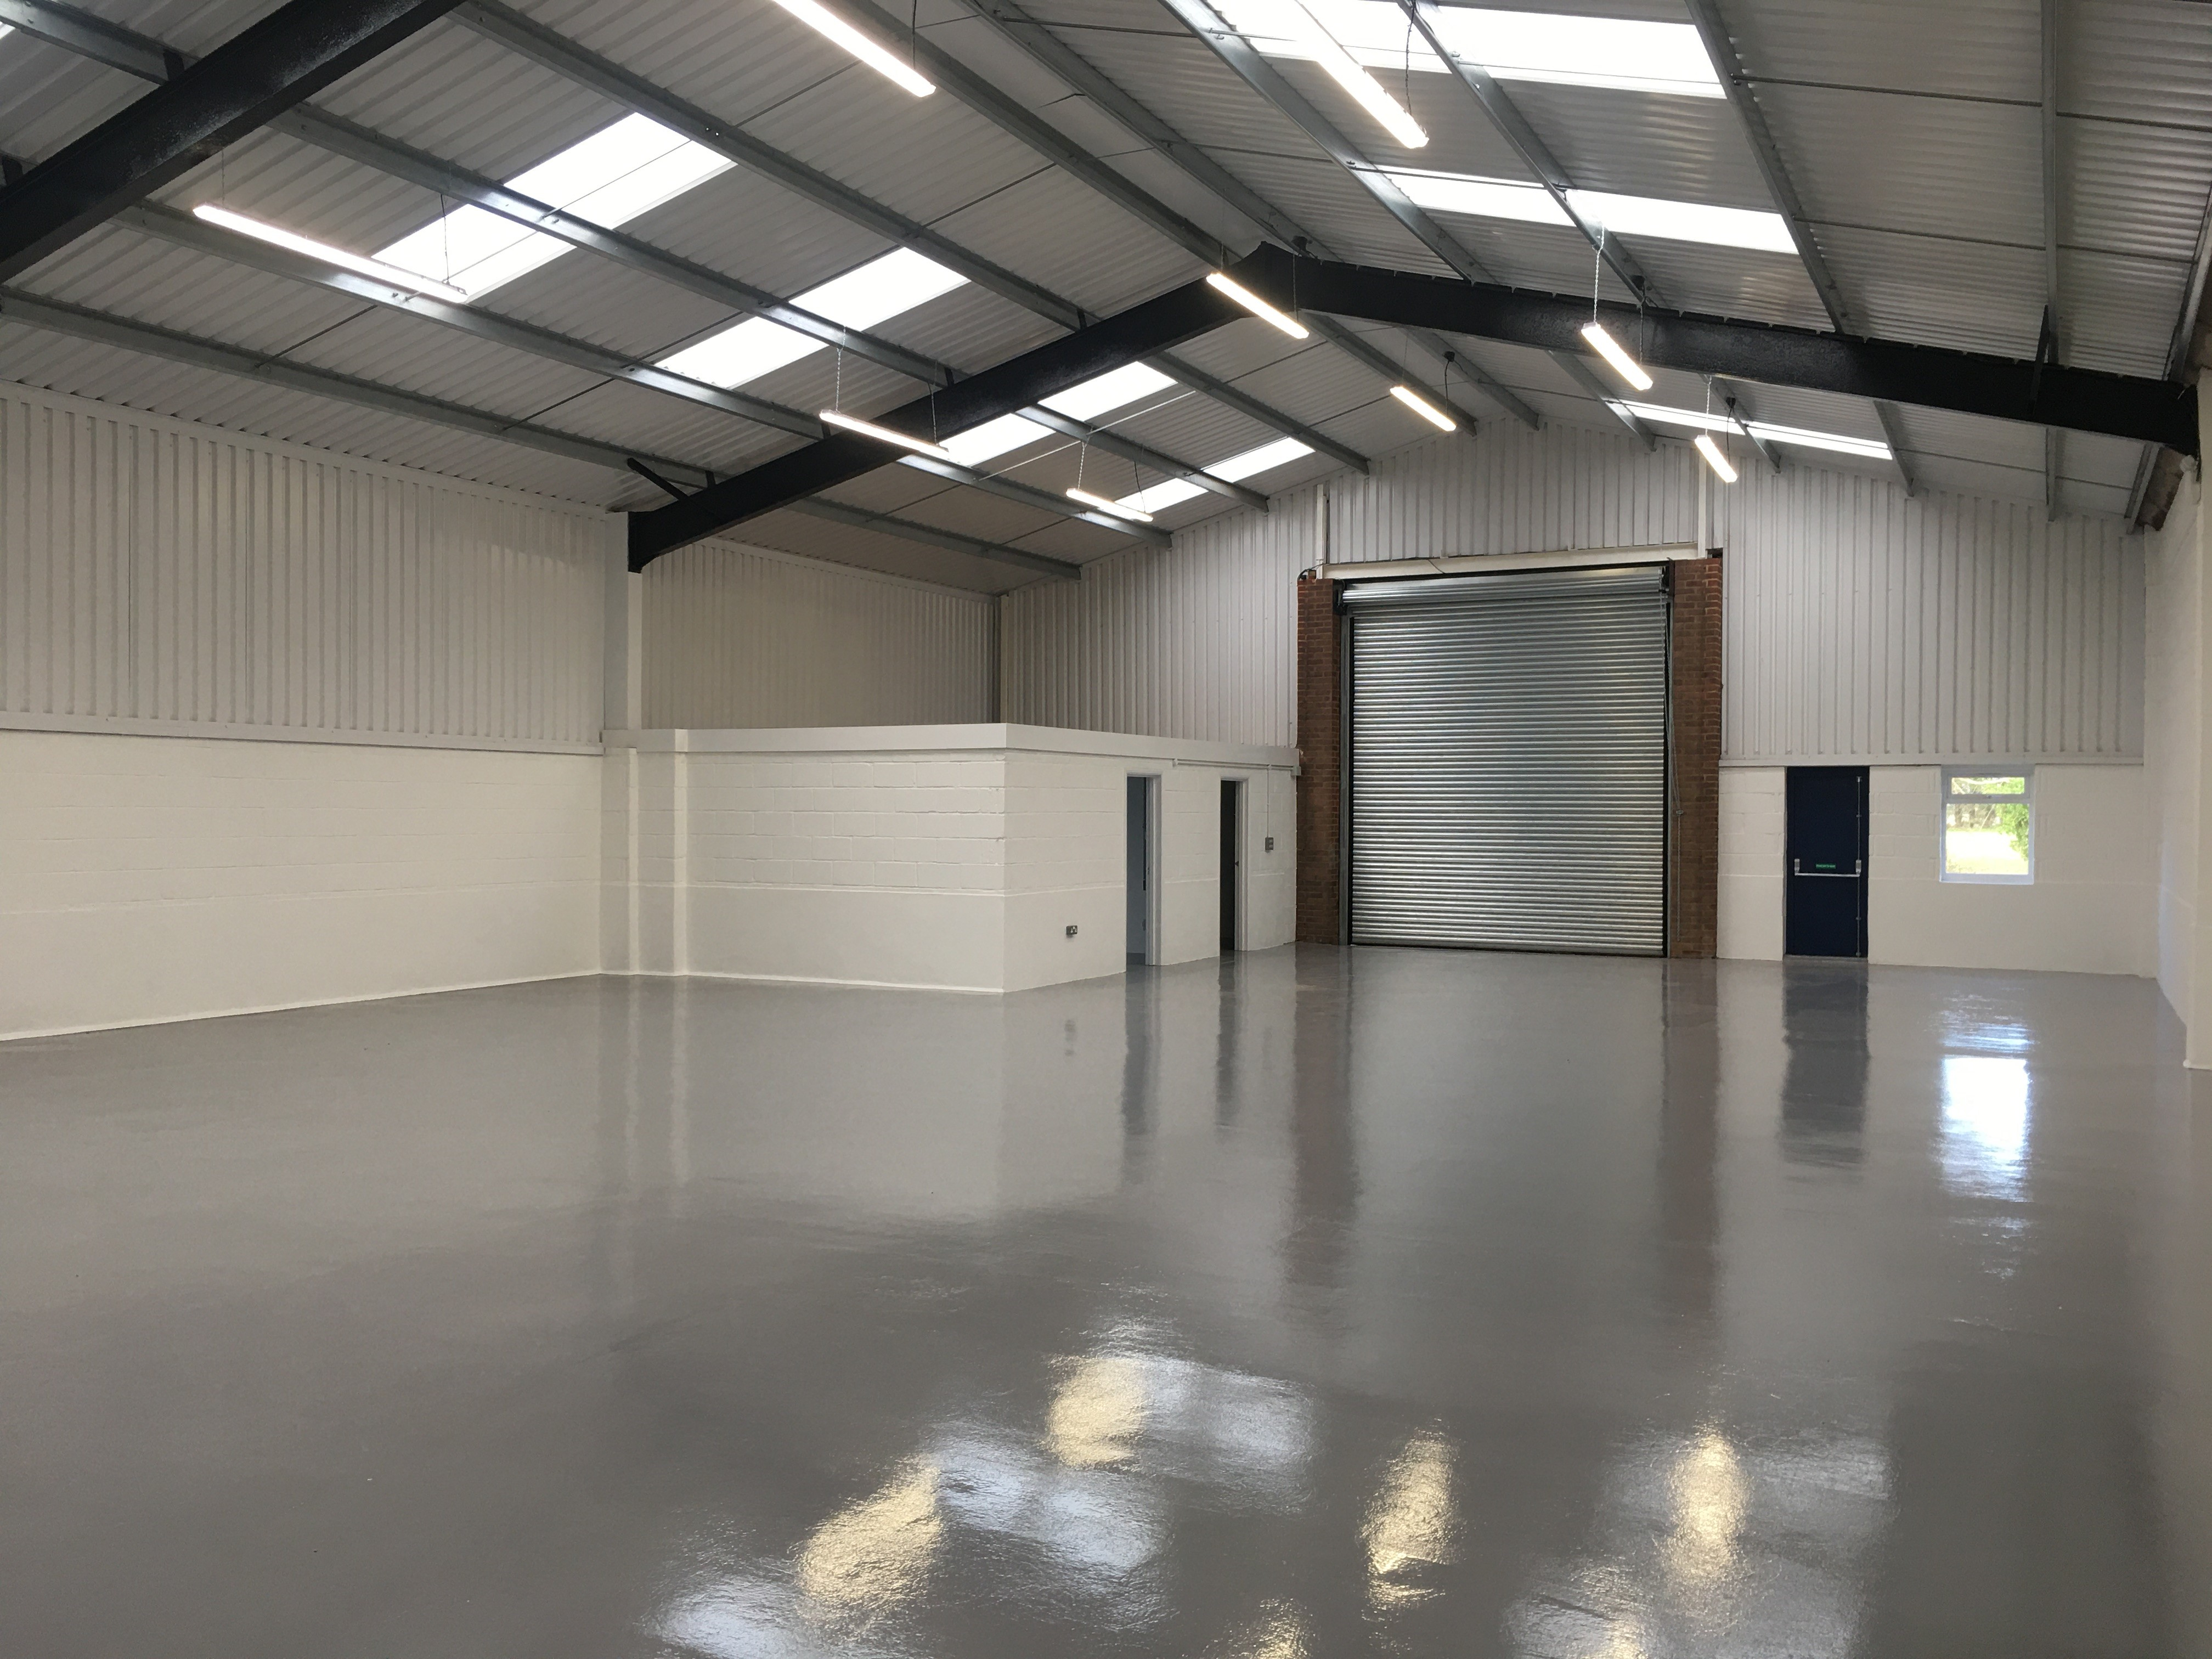 Image of Unit B4, Ford Airfield Industrial Estate, Ford, Arundel, West Sussex, BN18 0HY